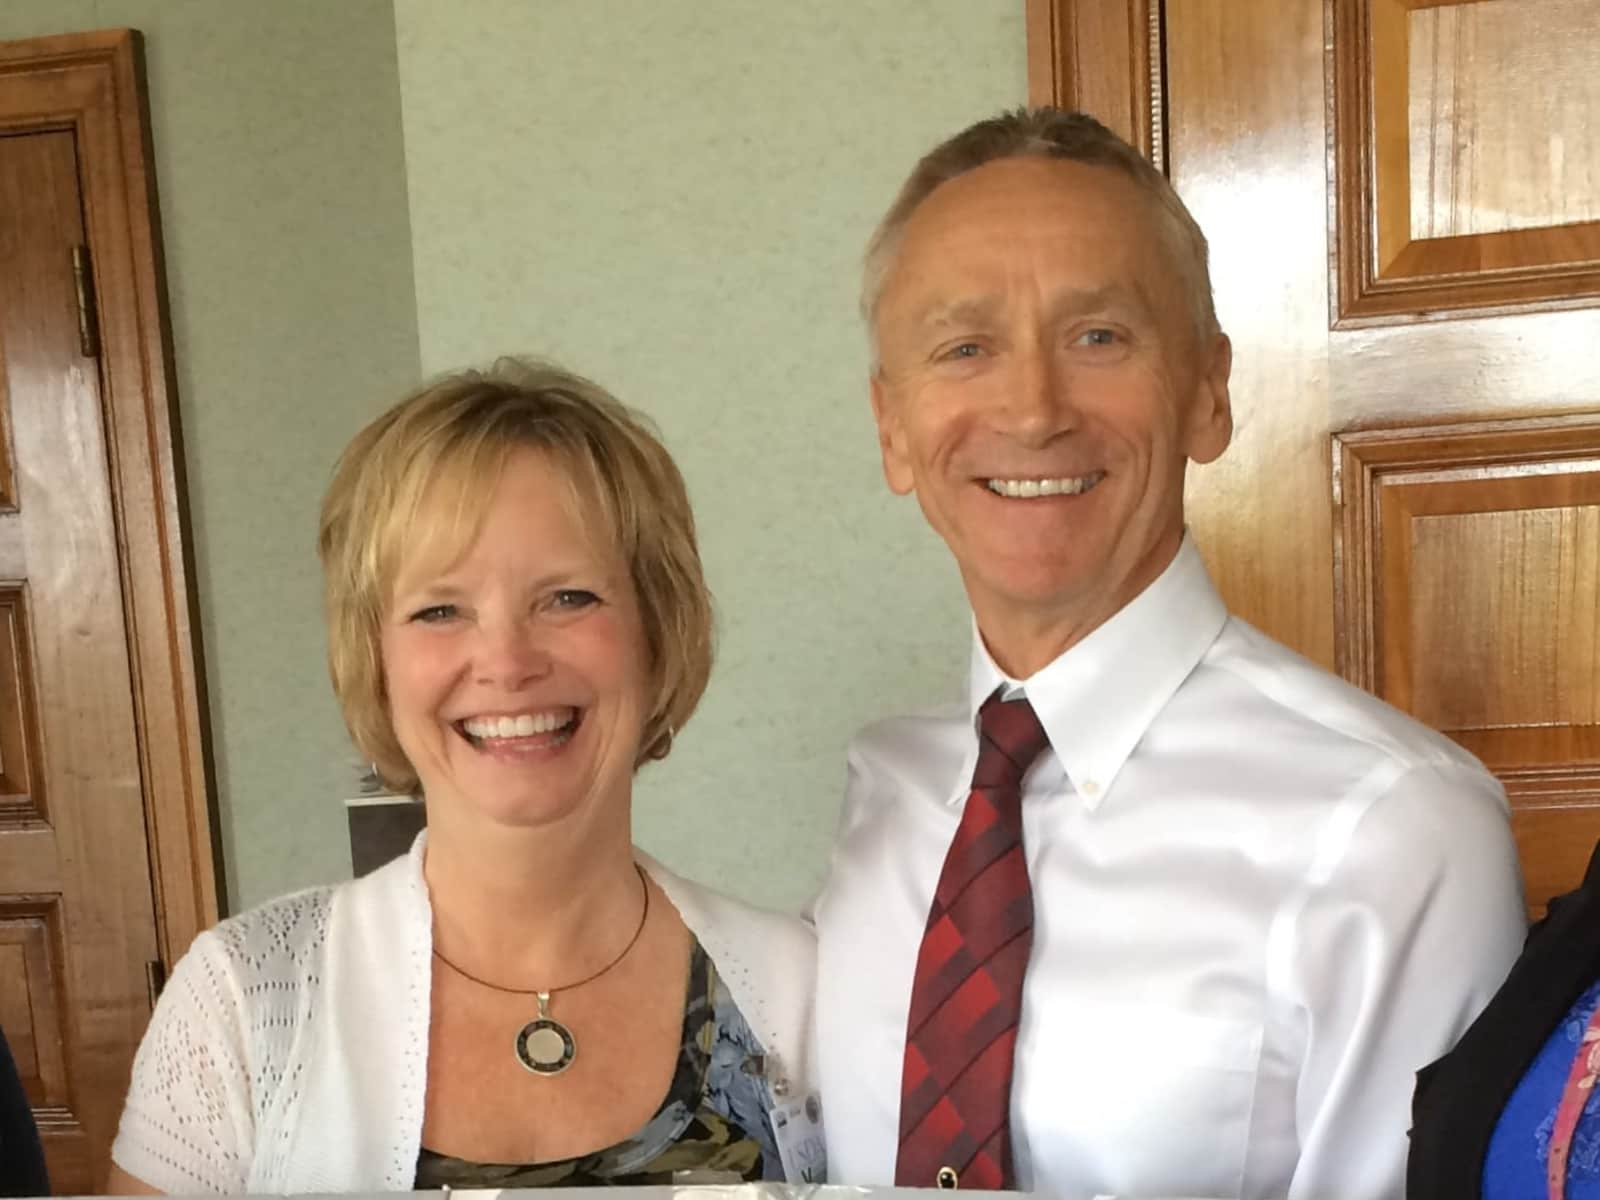 Charles & Jayne from Aitkin, Minnesota, United States